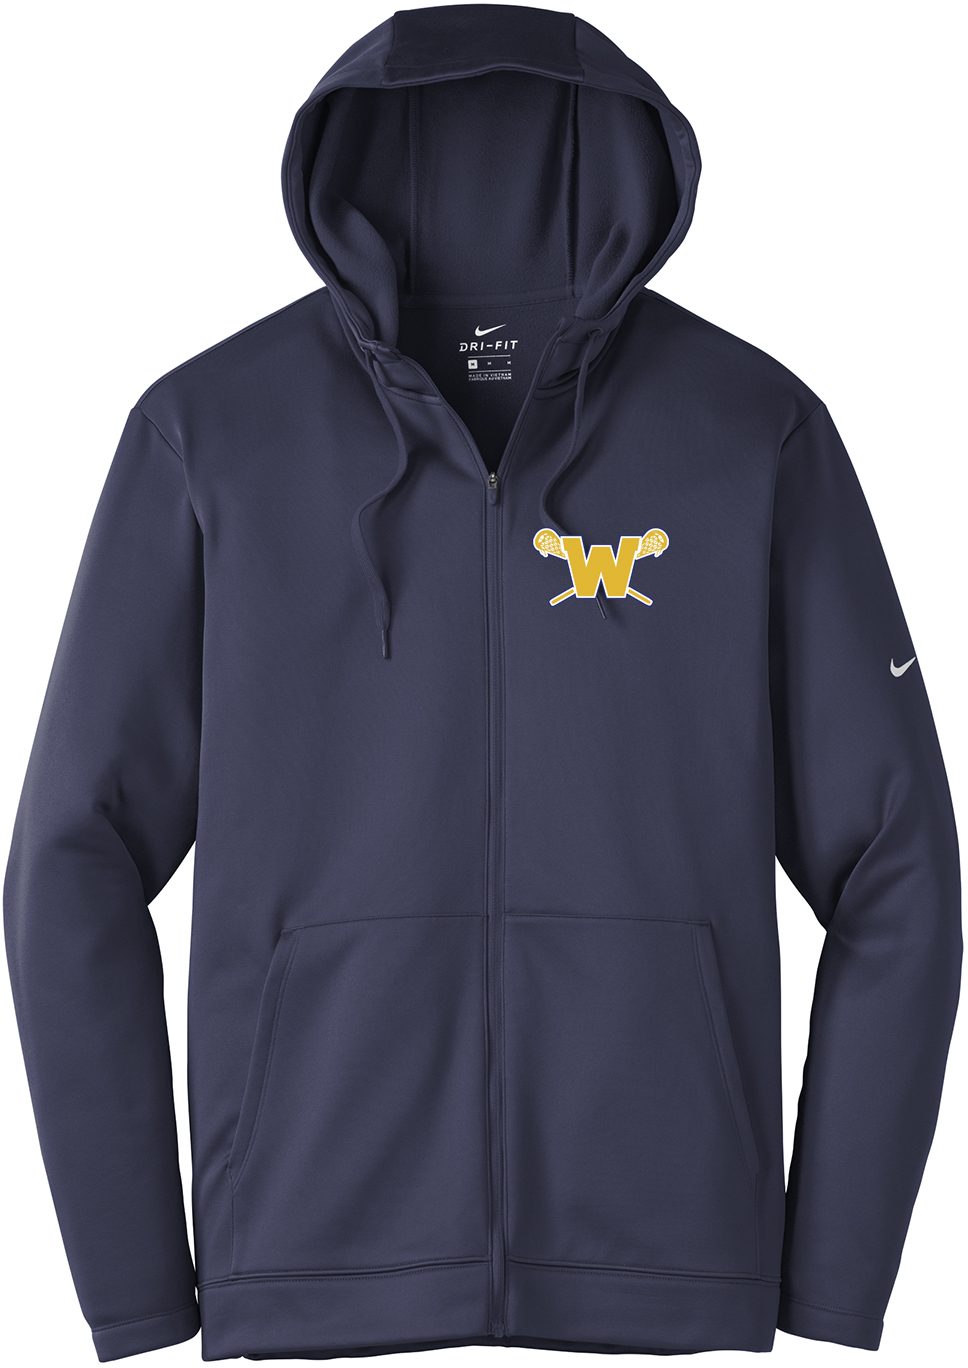 Webster Lacrosse Navy Nike Therma-FIT Full Zip Hoodie